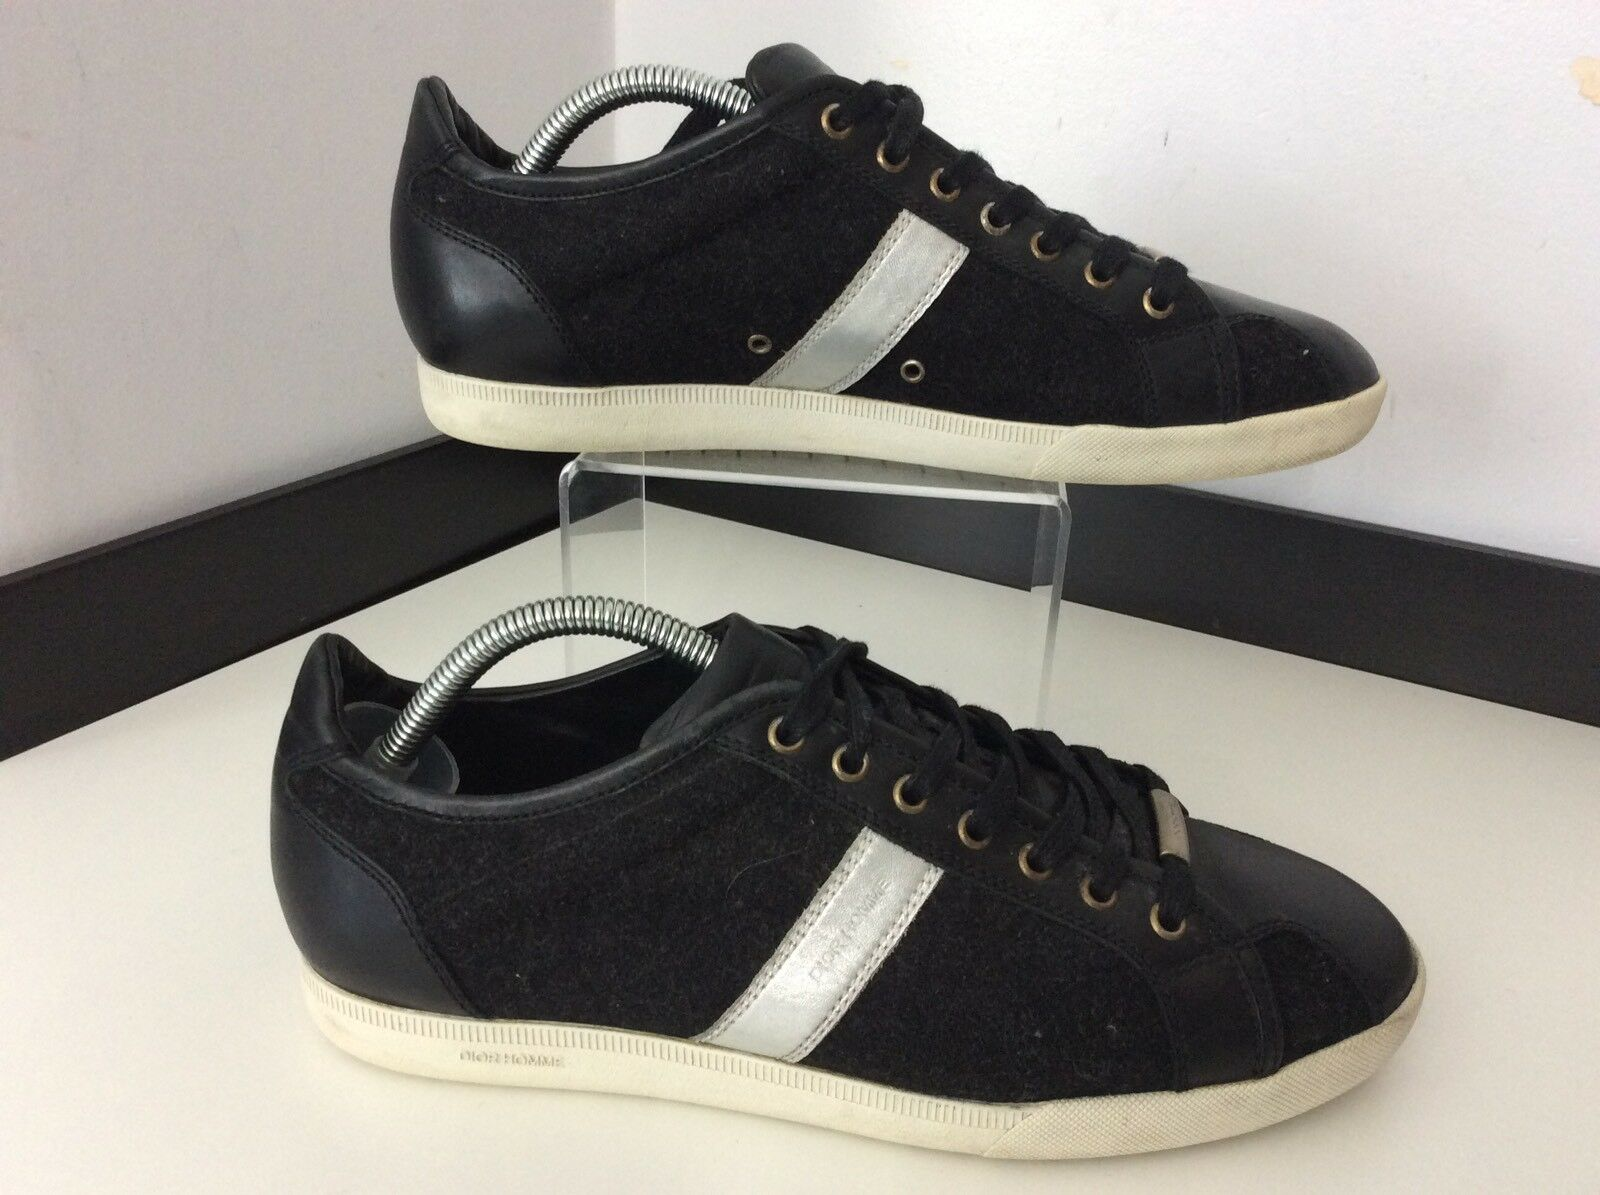 Dior hommes Sneakers, Trainers,ChaussuresUk 7 Eu41 CharcoalGris ,noir , Gc